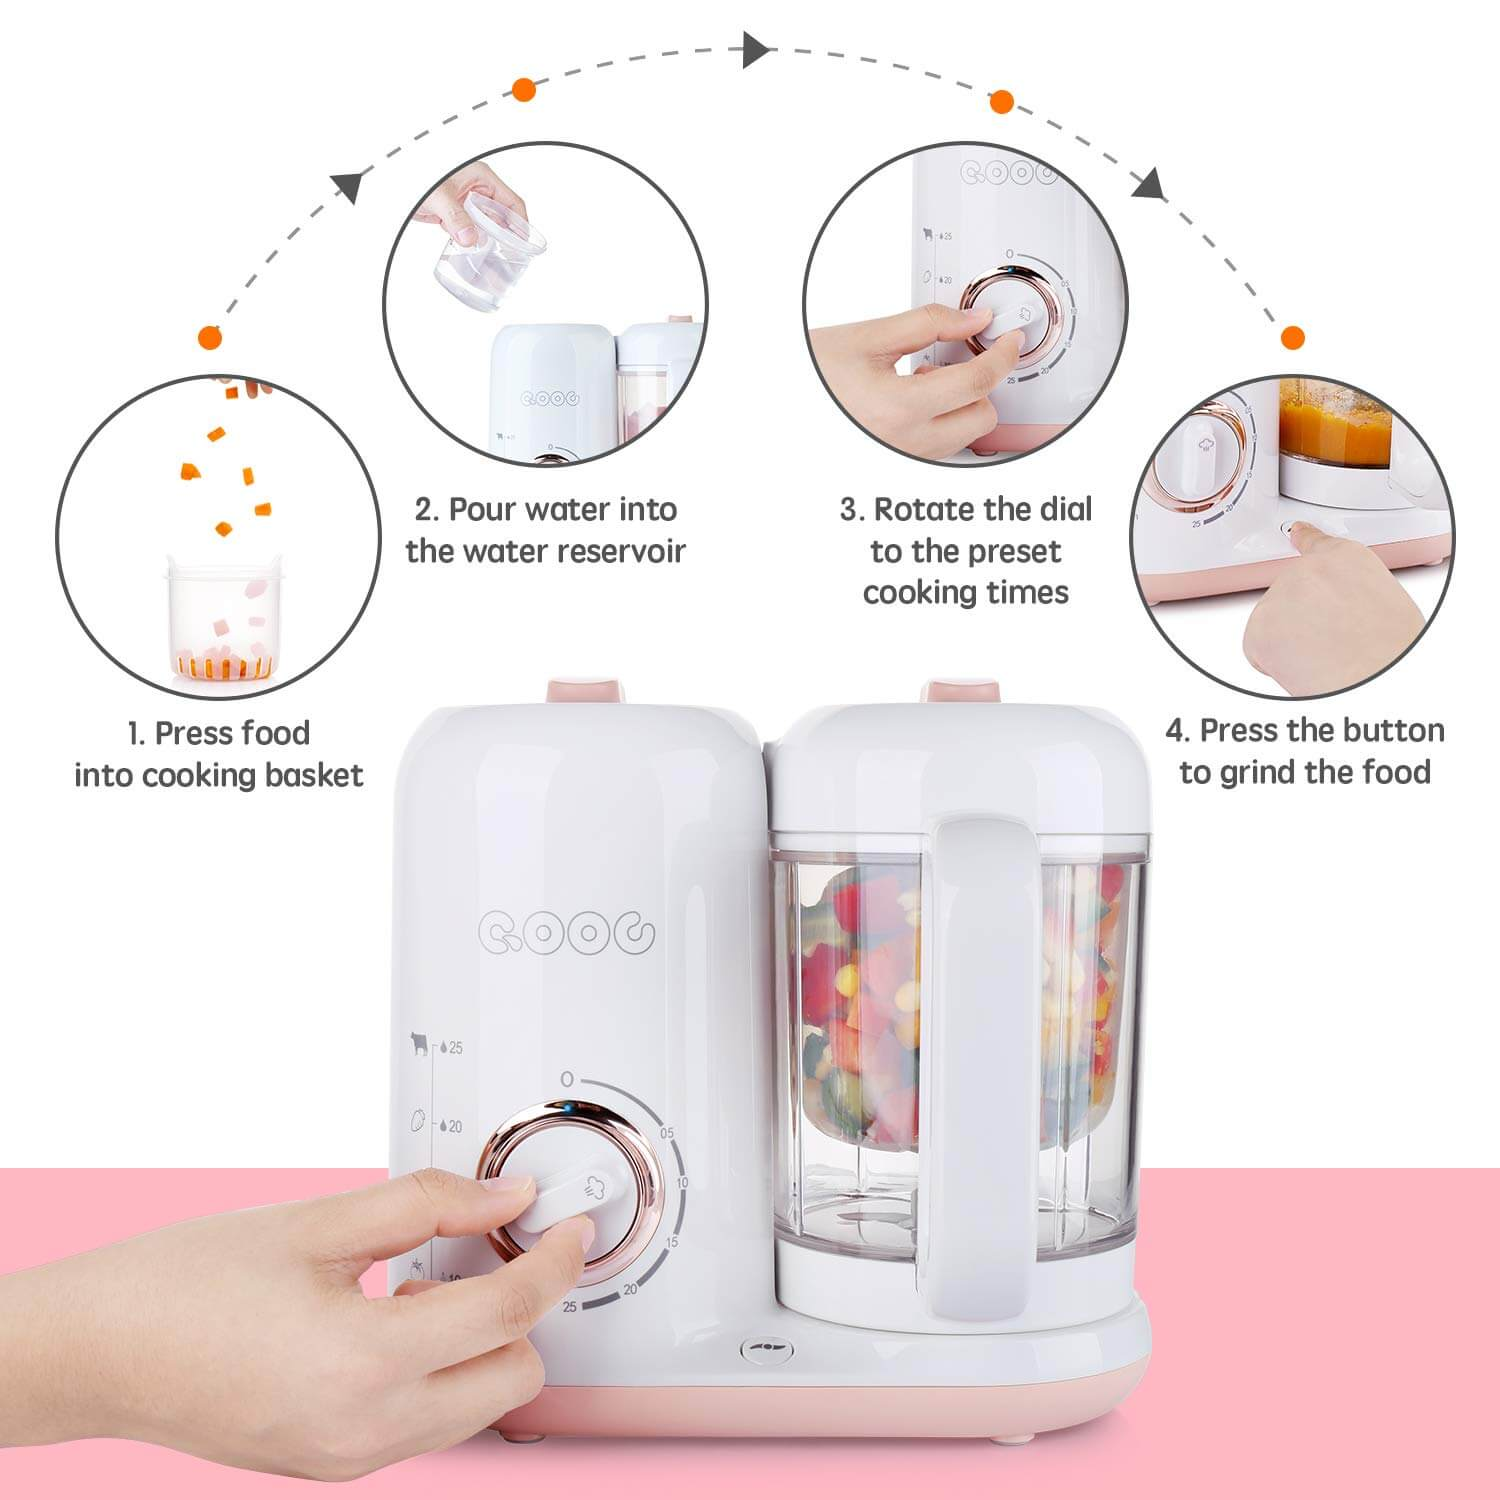 QOOC 4-in-1 Baby Food Maker Pro,  food processor for baby food, making your own baby food,